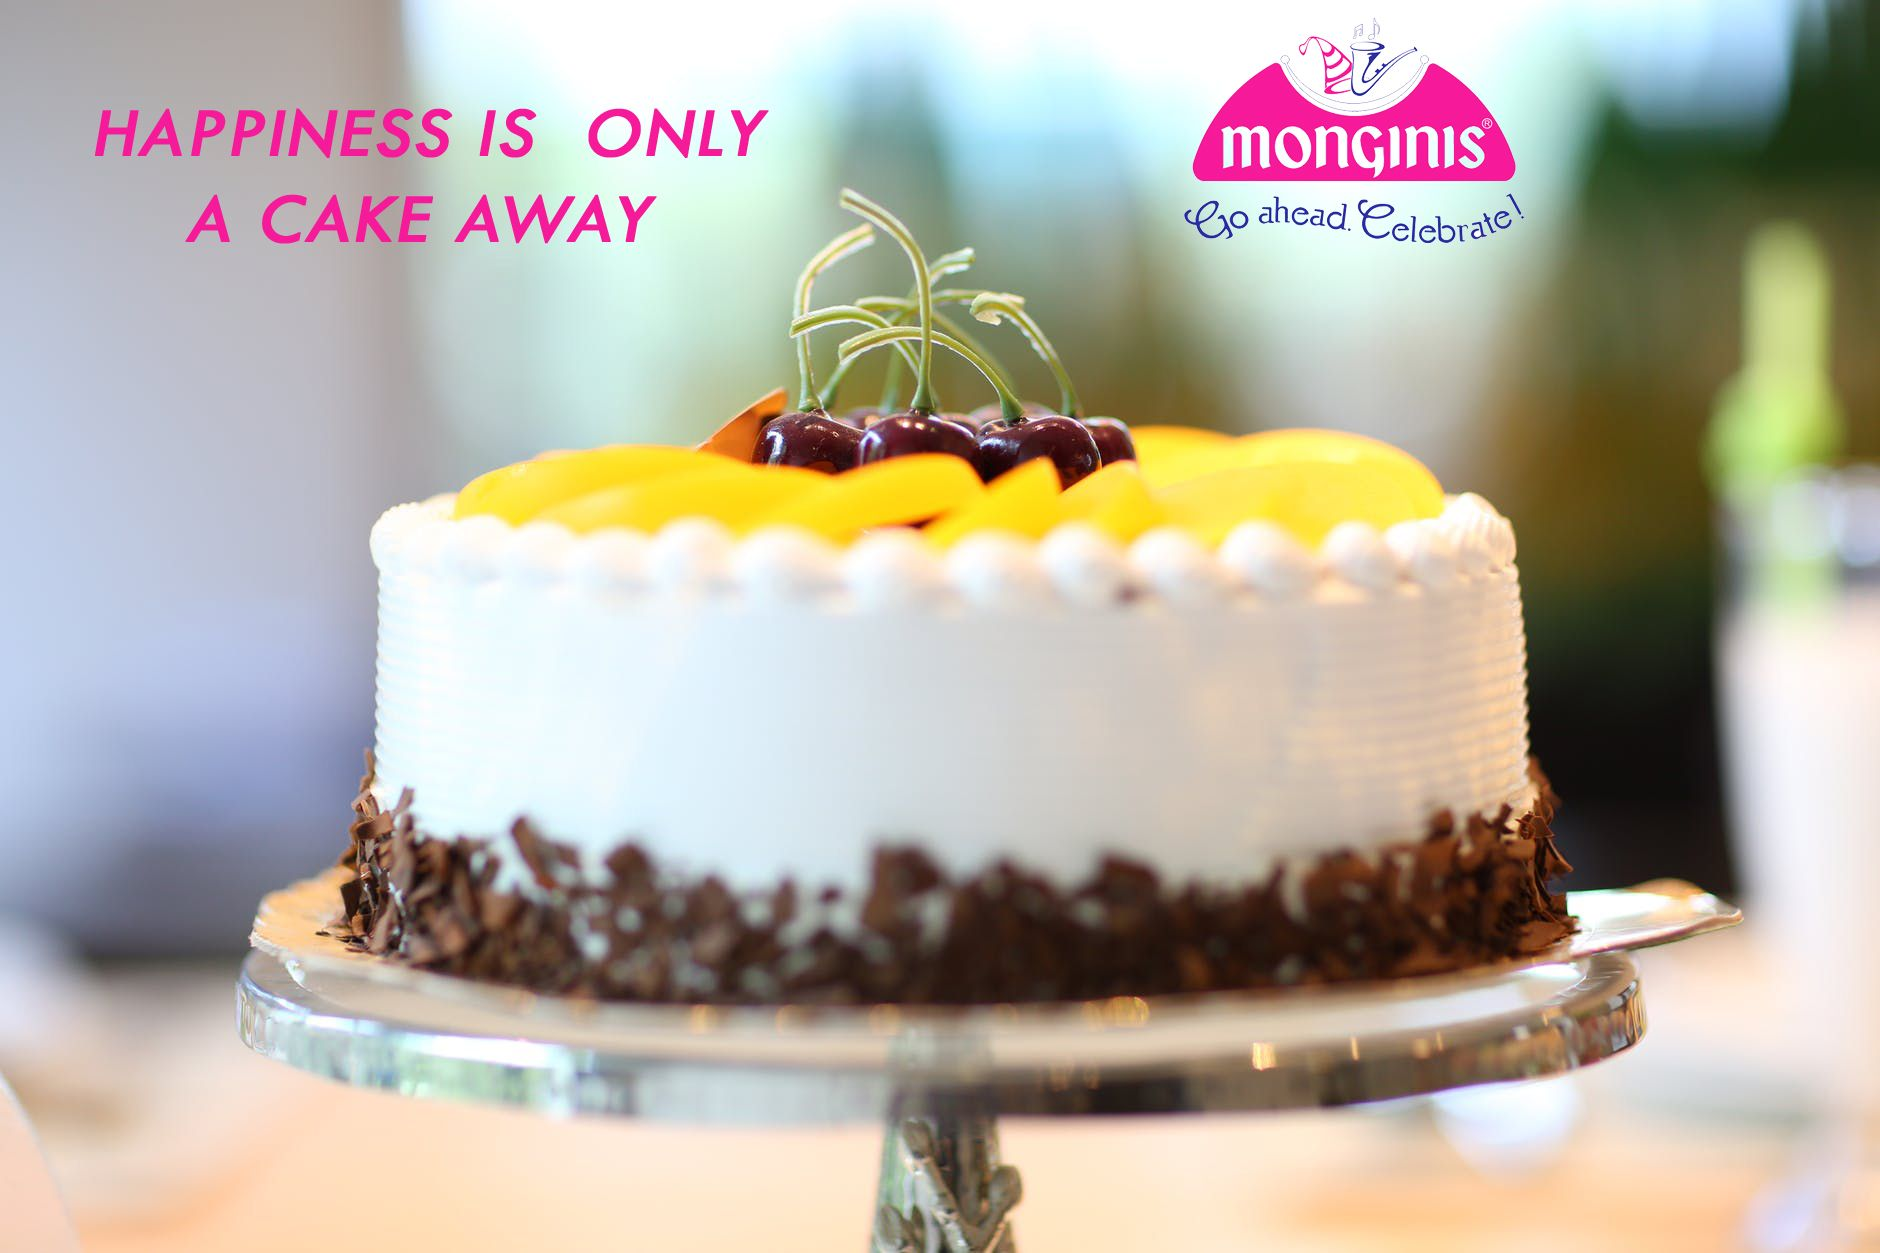 Best Cake Only at Monginis Happy birthday cakes